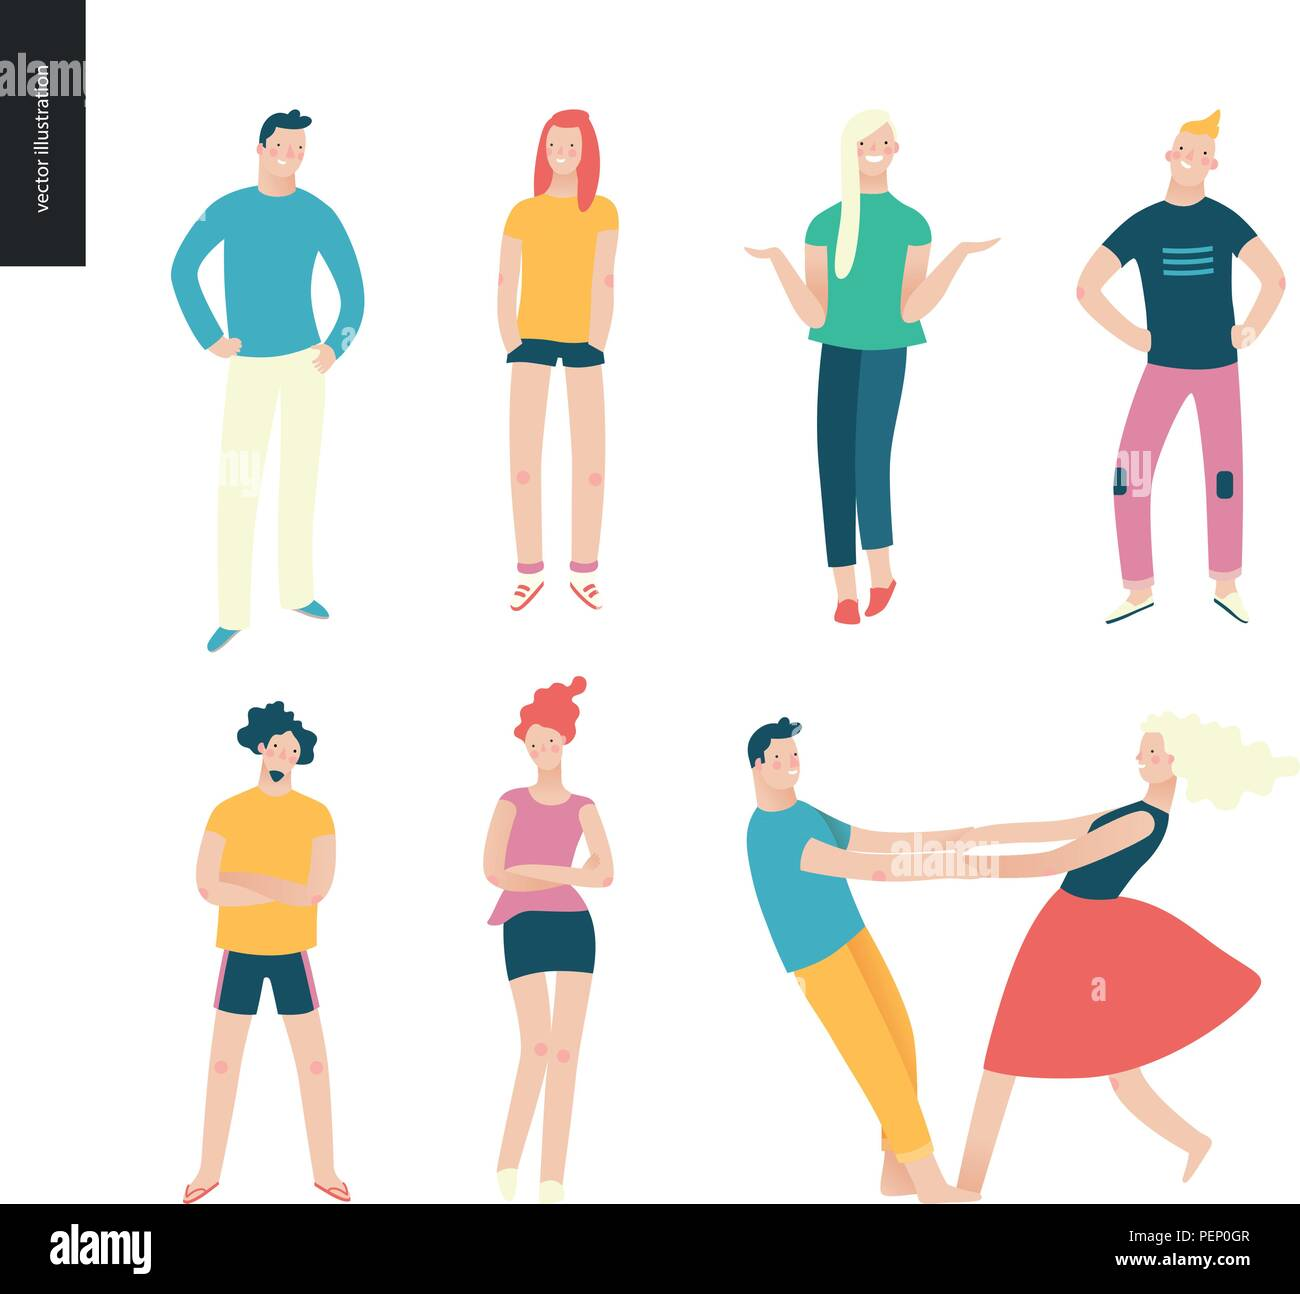 Bright people portraits set - young men and women - set of various posing people in fashion colors - standing with arms akimbo, crossed arms, whirling - Stock Vector